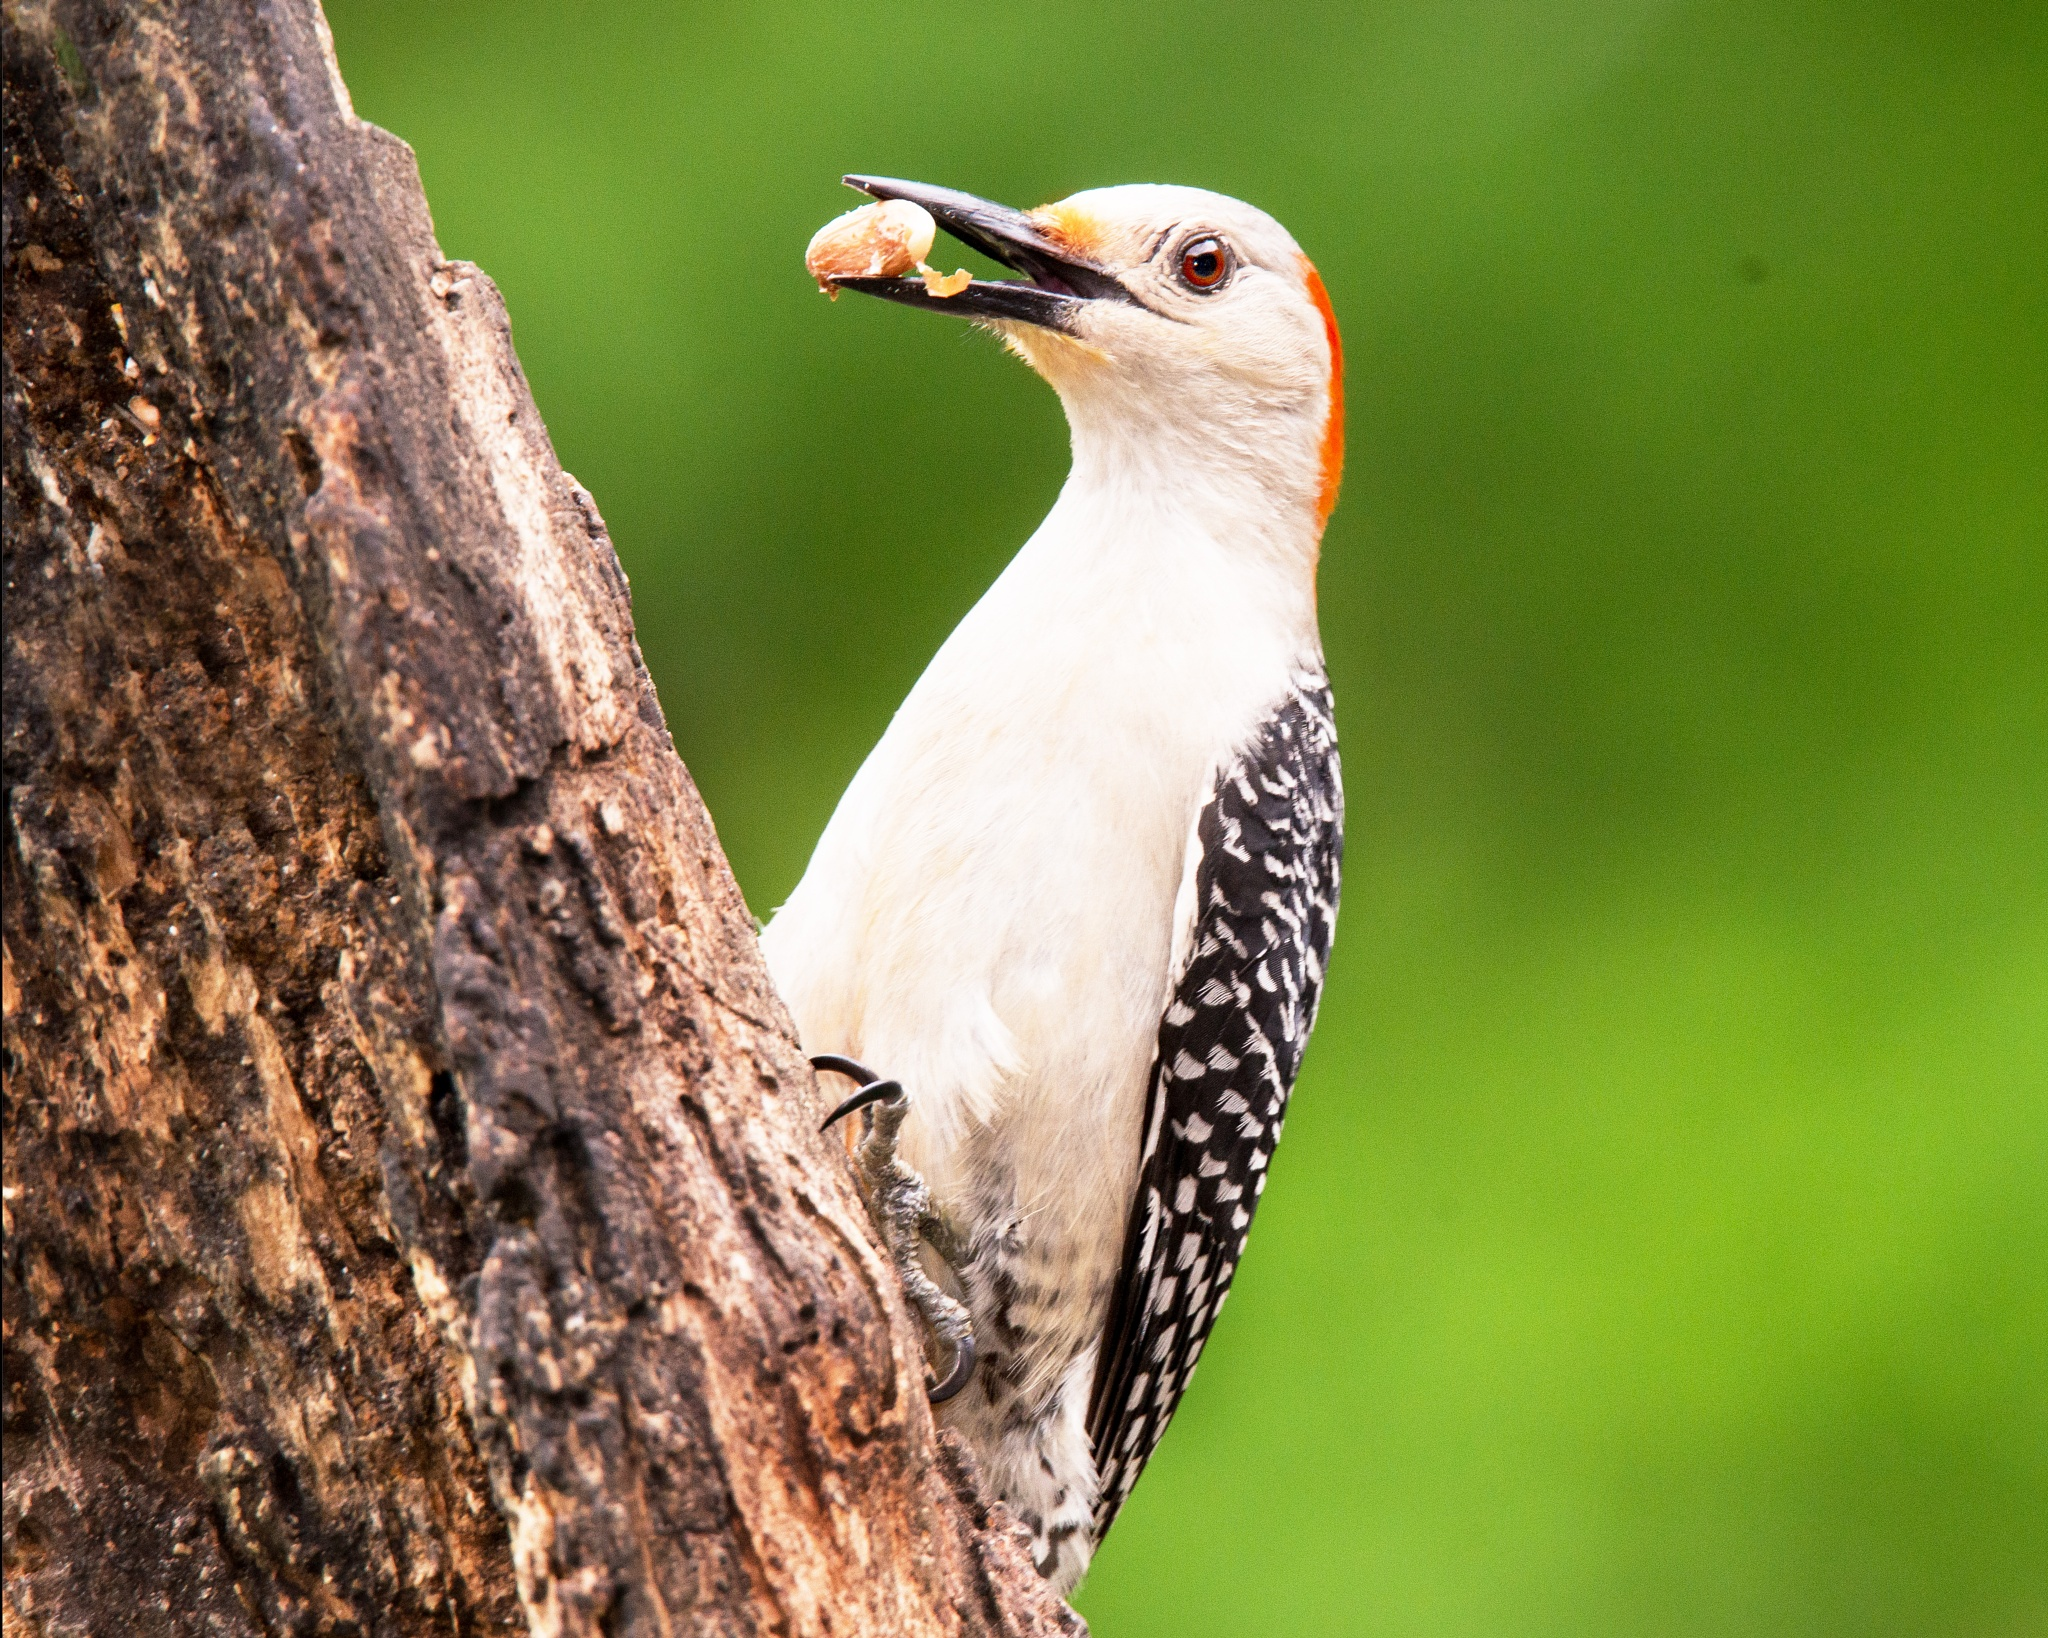 Female Red Bellied Woodpecker by mfontaine